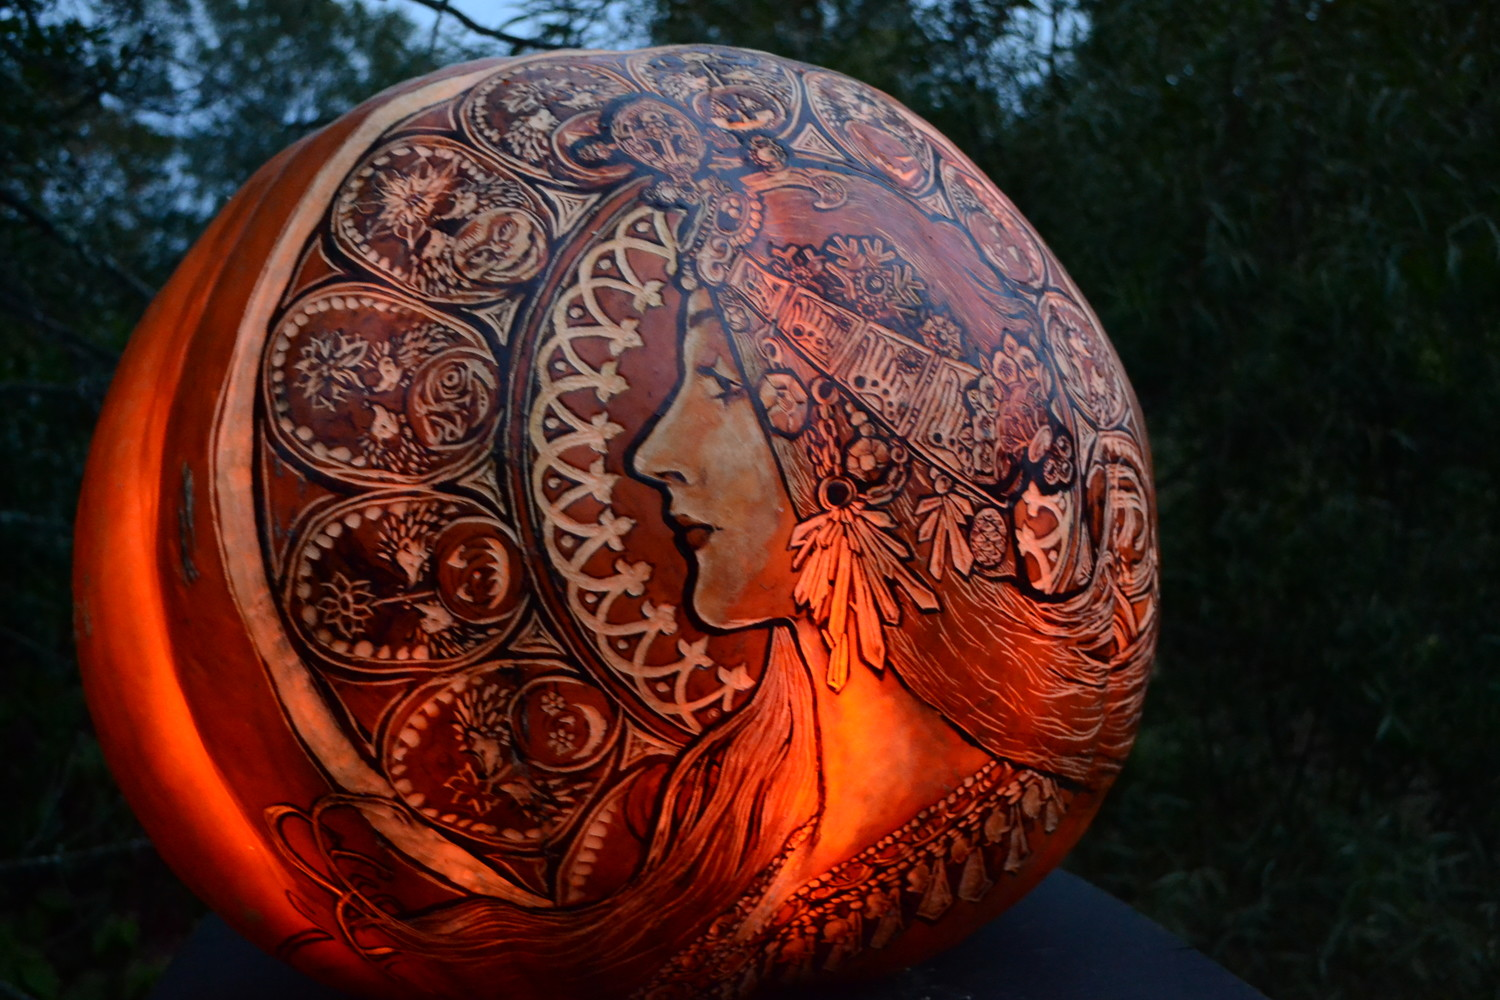 The intricate detail carved into the large pumpkins is something you have to see to truly appreciate. No photo does it justice.